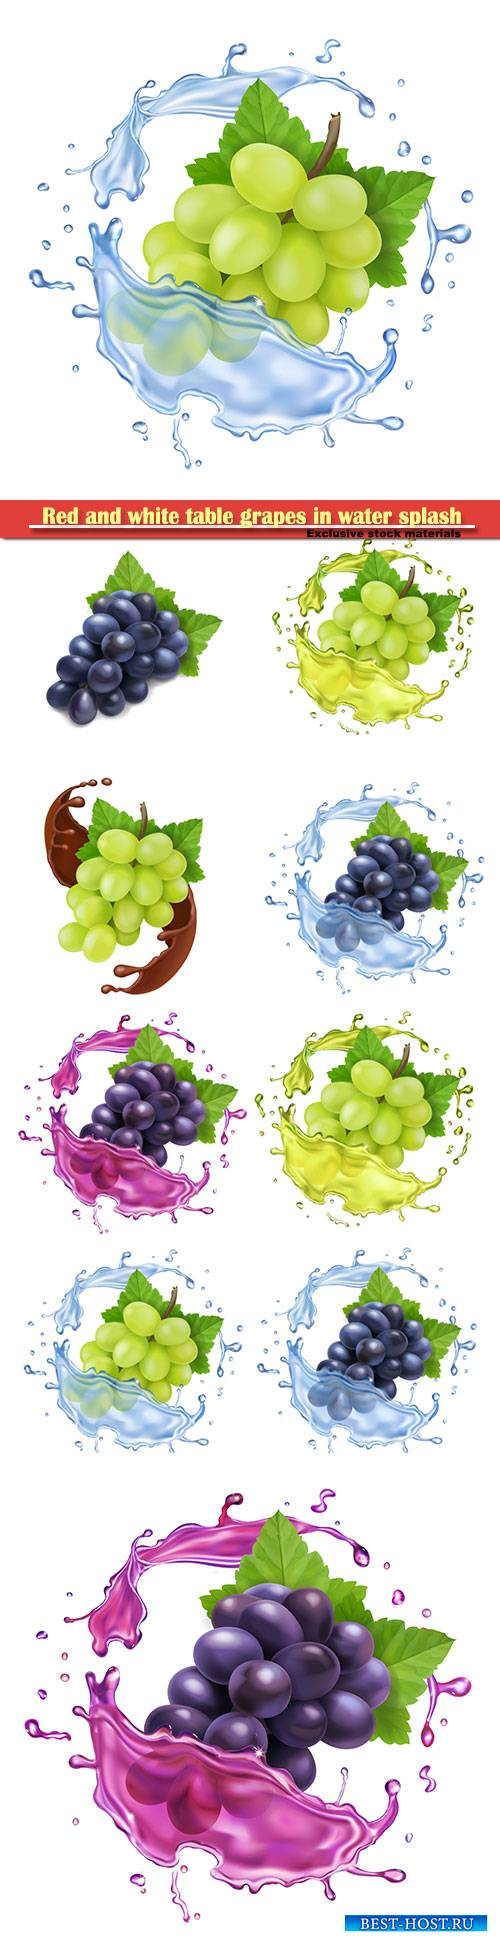 Red and white table grapes in water splash bunch of wine grapes realistic s ...